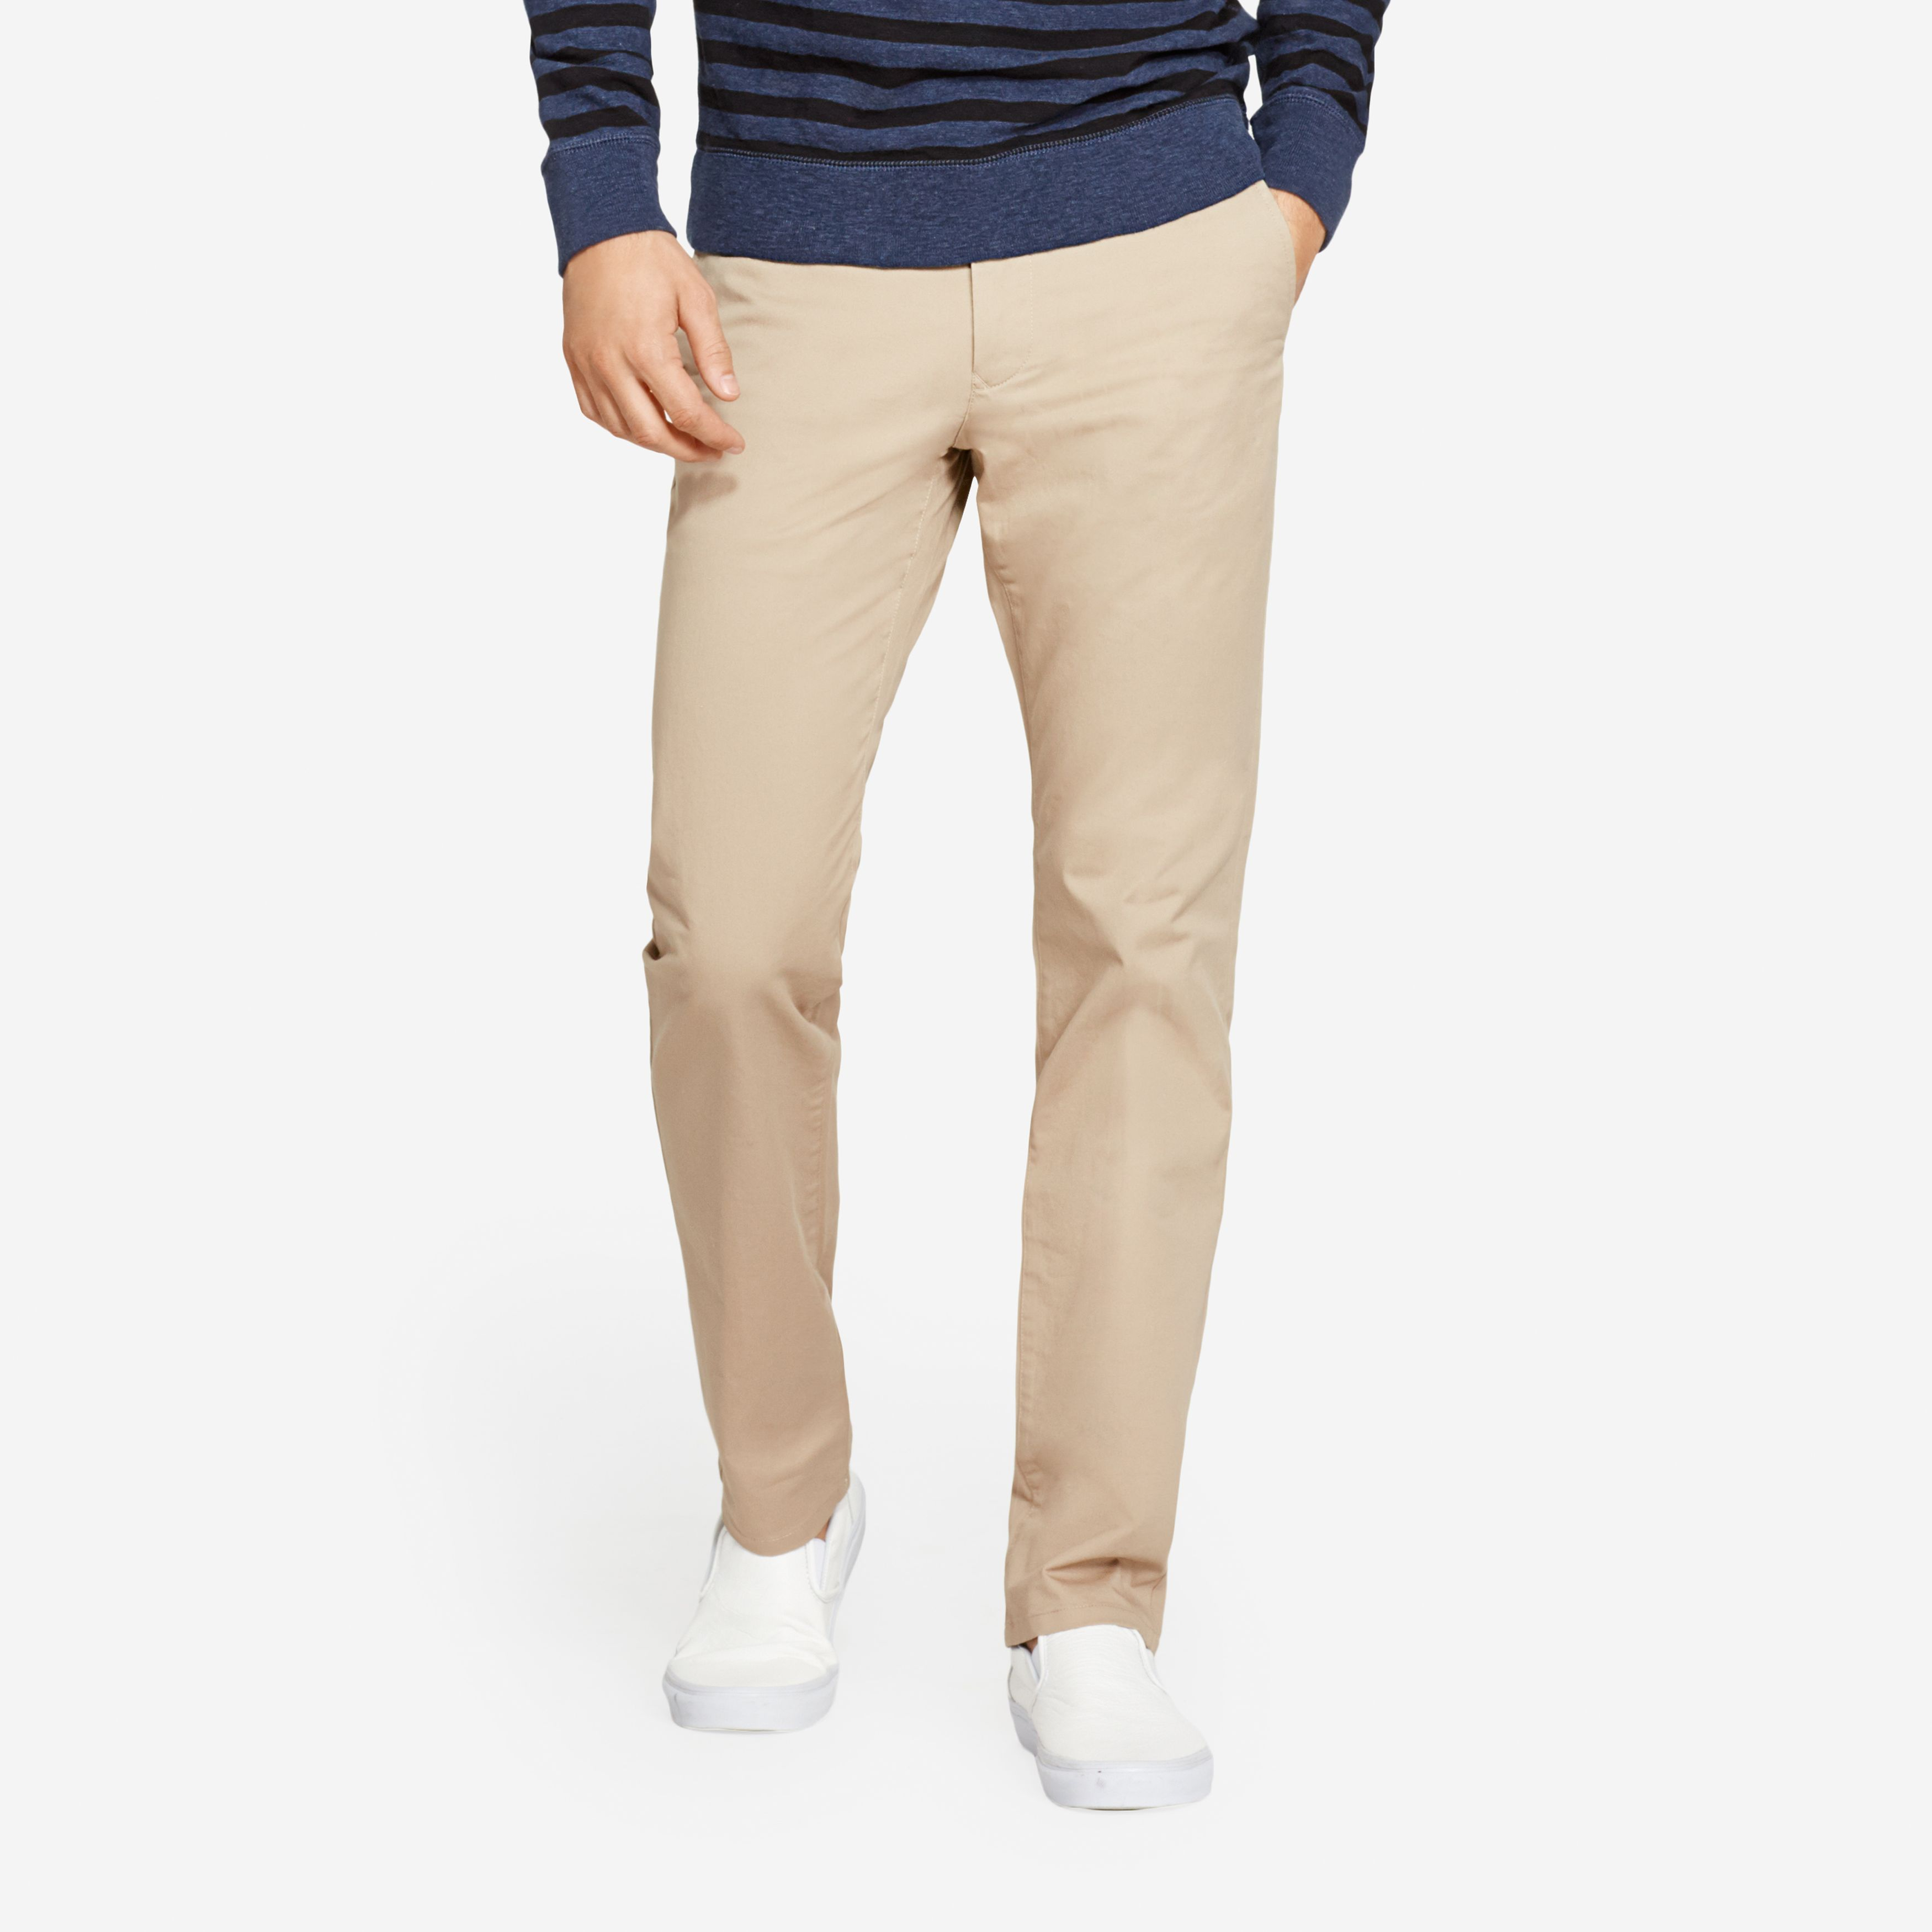 durham collections pant s pdp most footwear jeans mens men comfortable photo f keen pants comforter